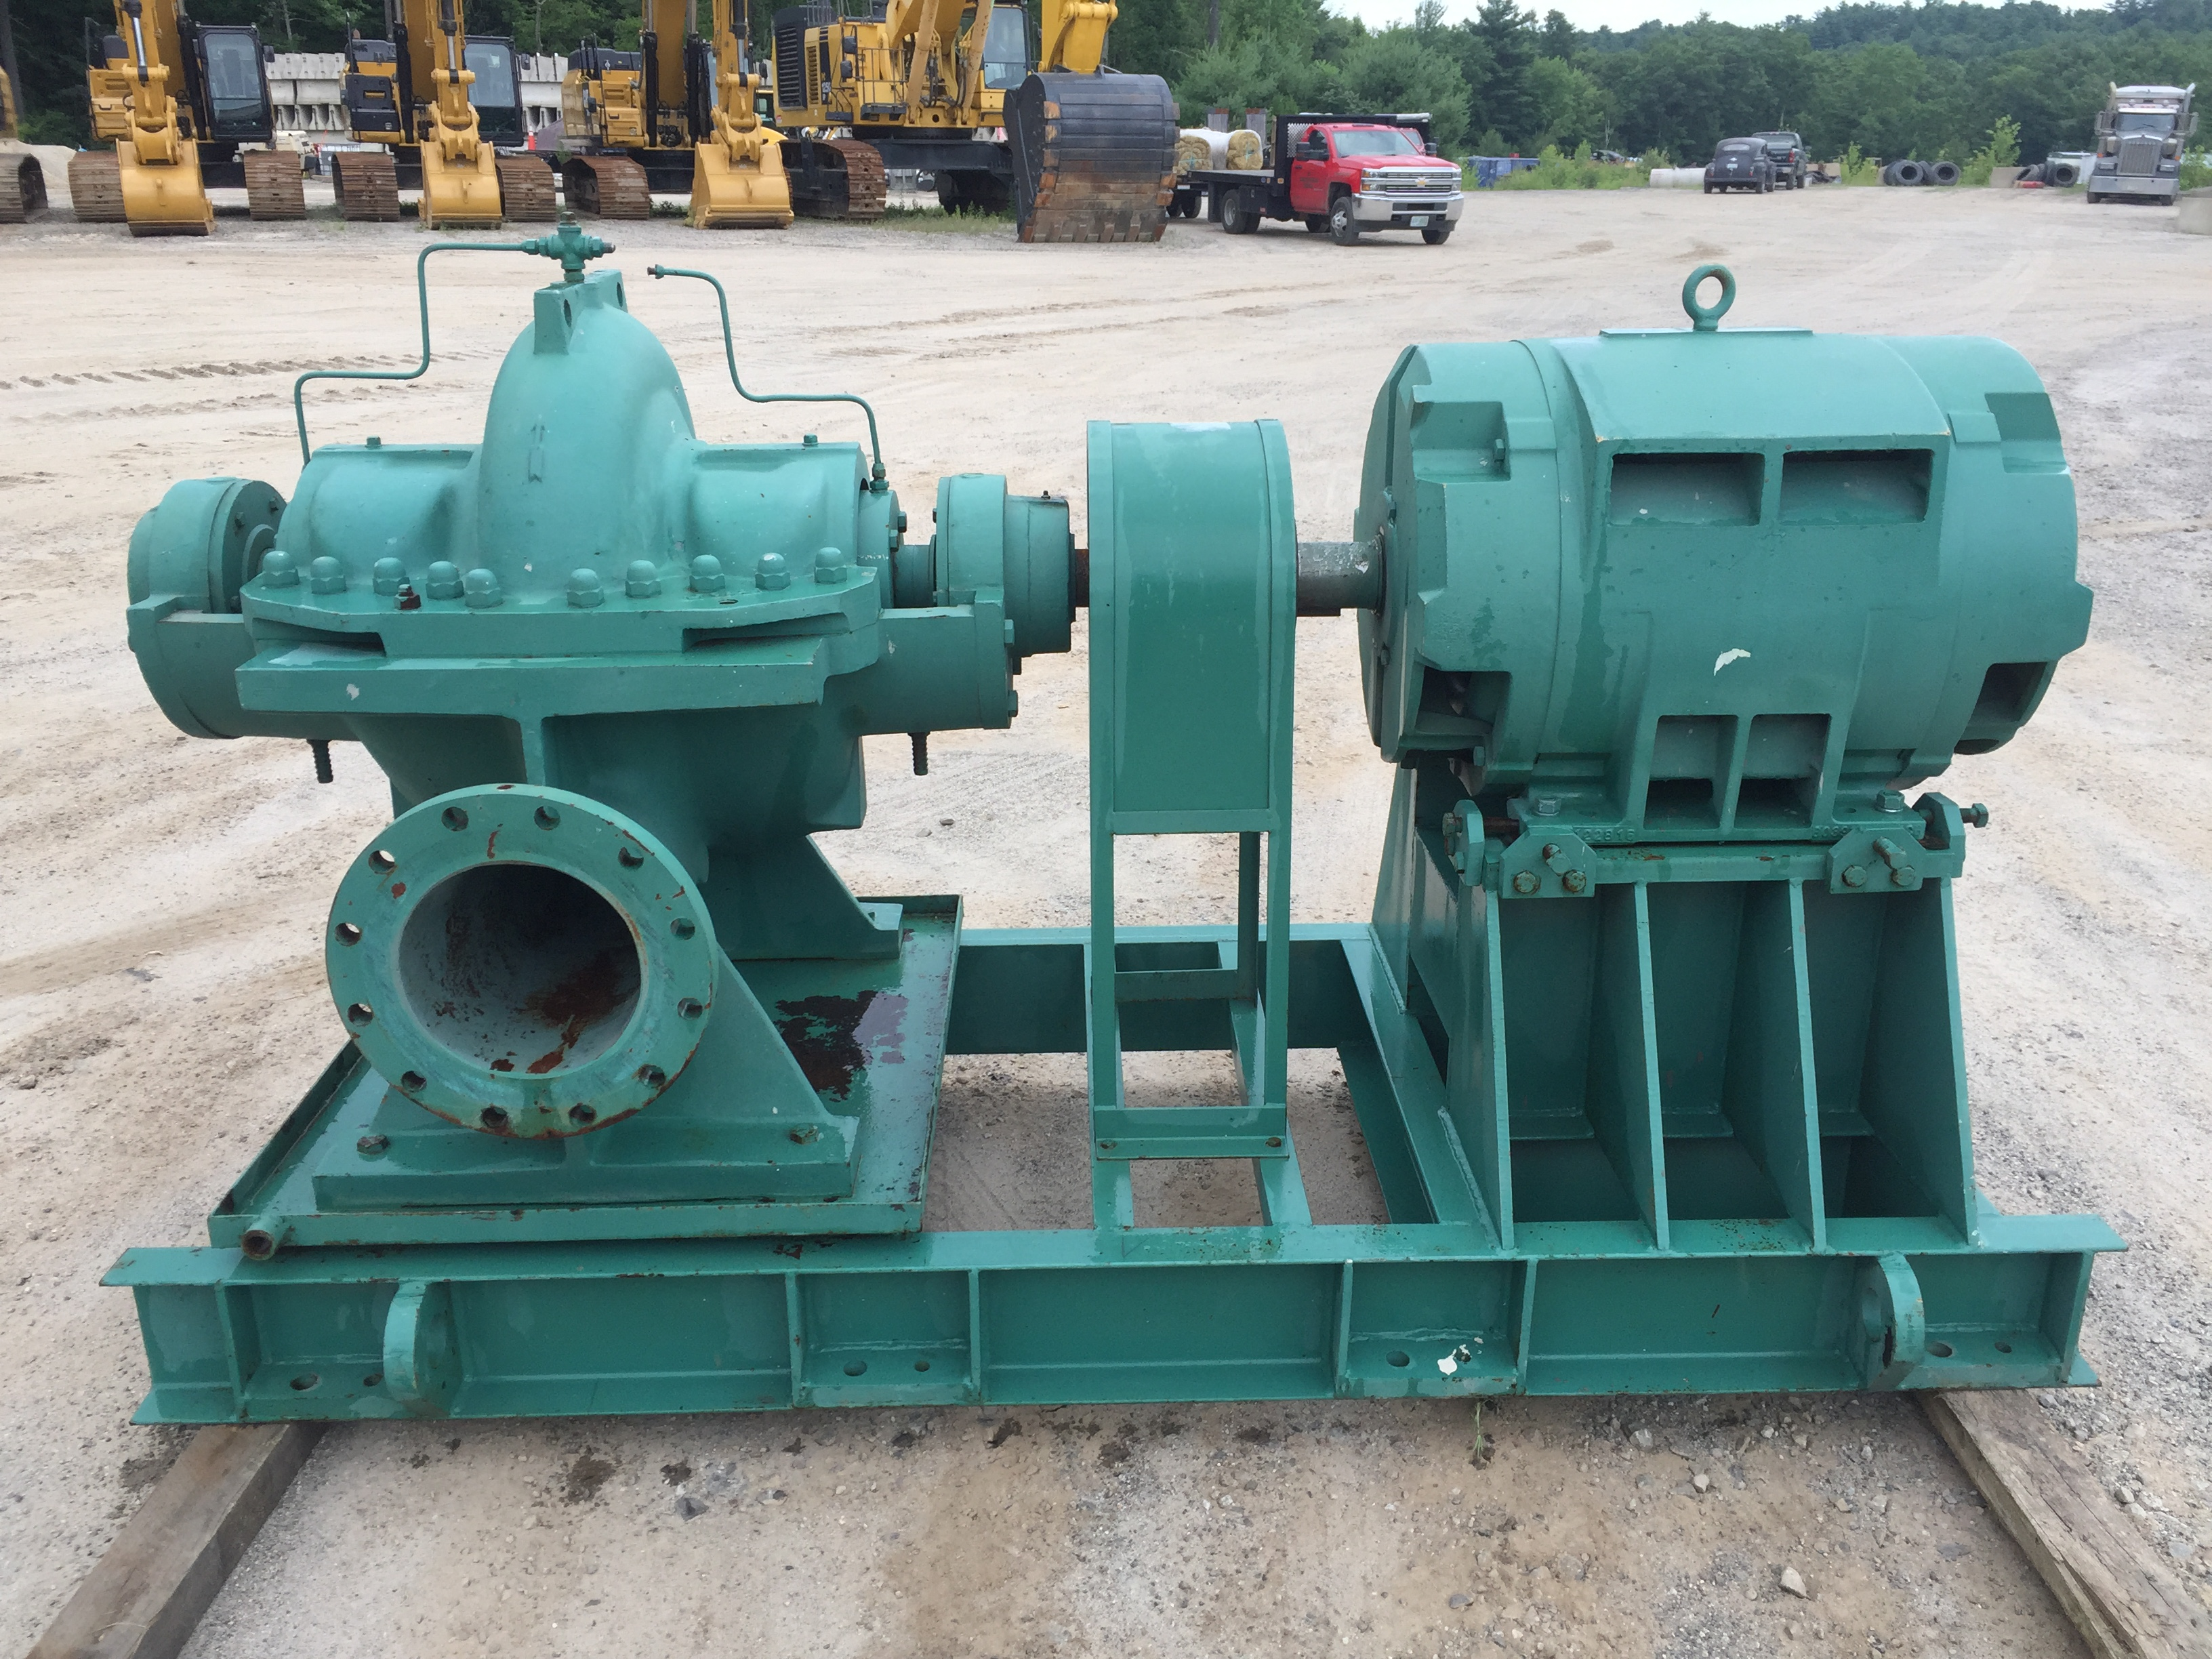 (2) 2017 Taco 3000 GPM 150HP Industrial Pump and Motor $18,500.00